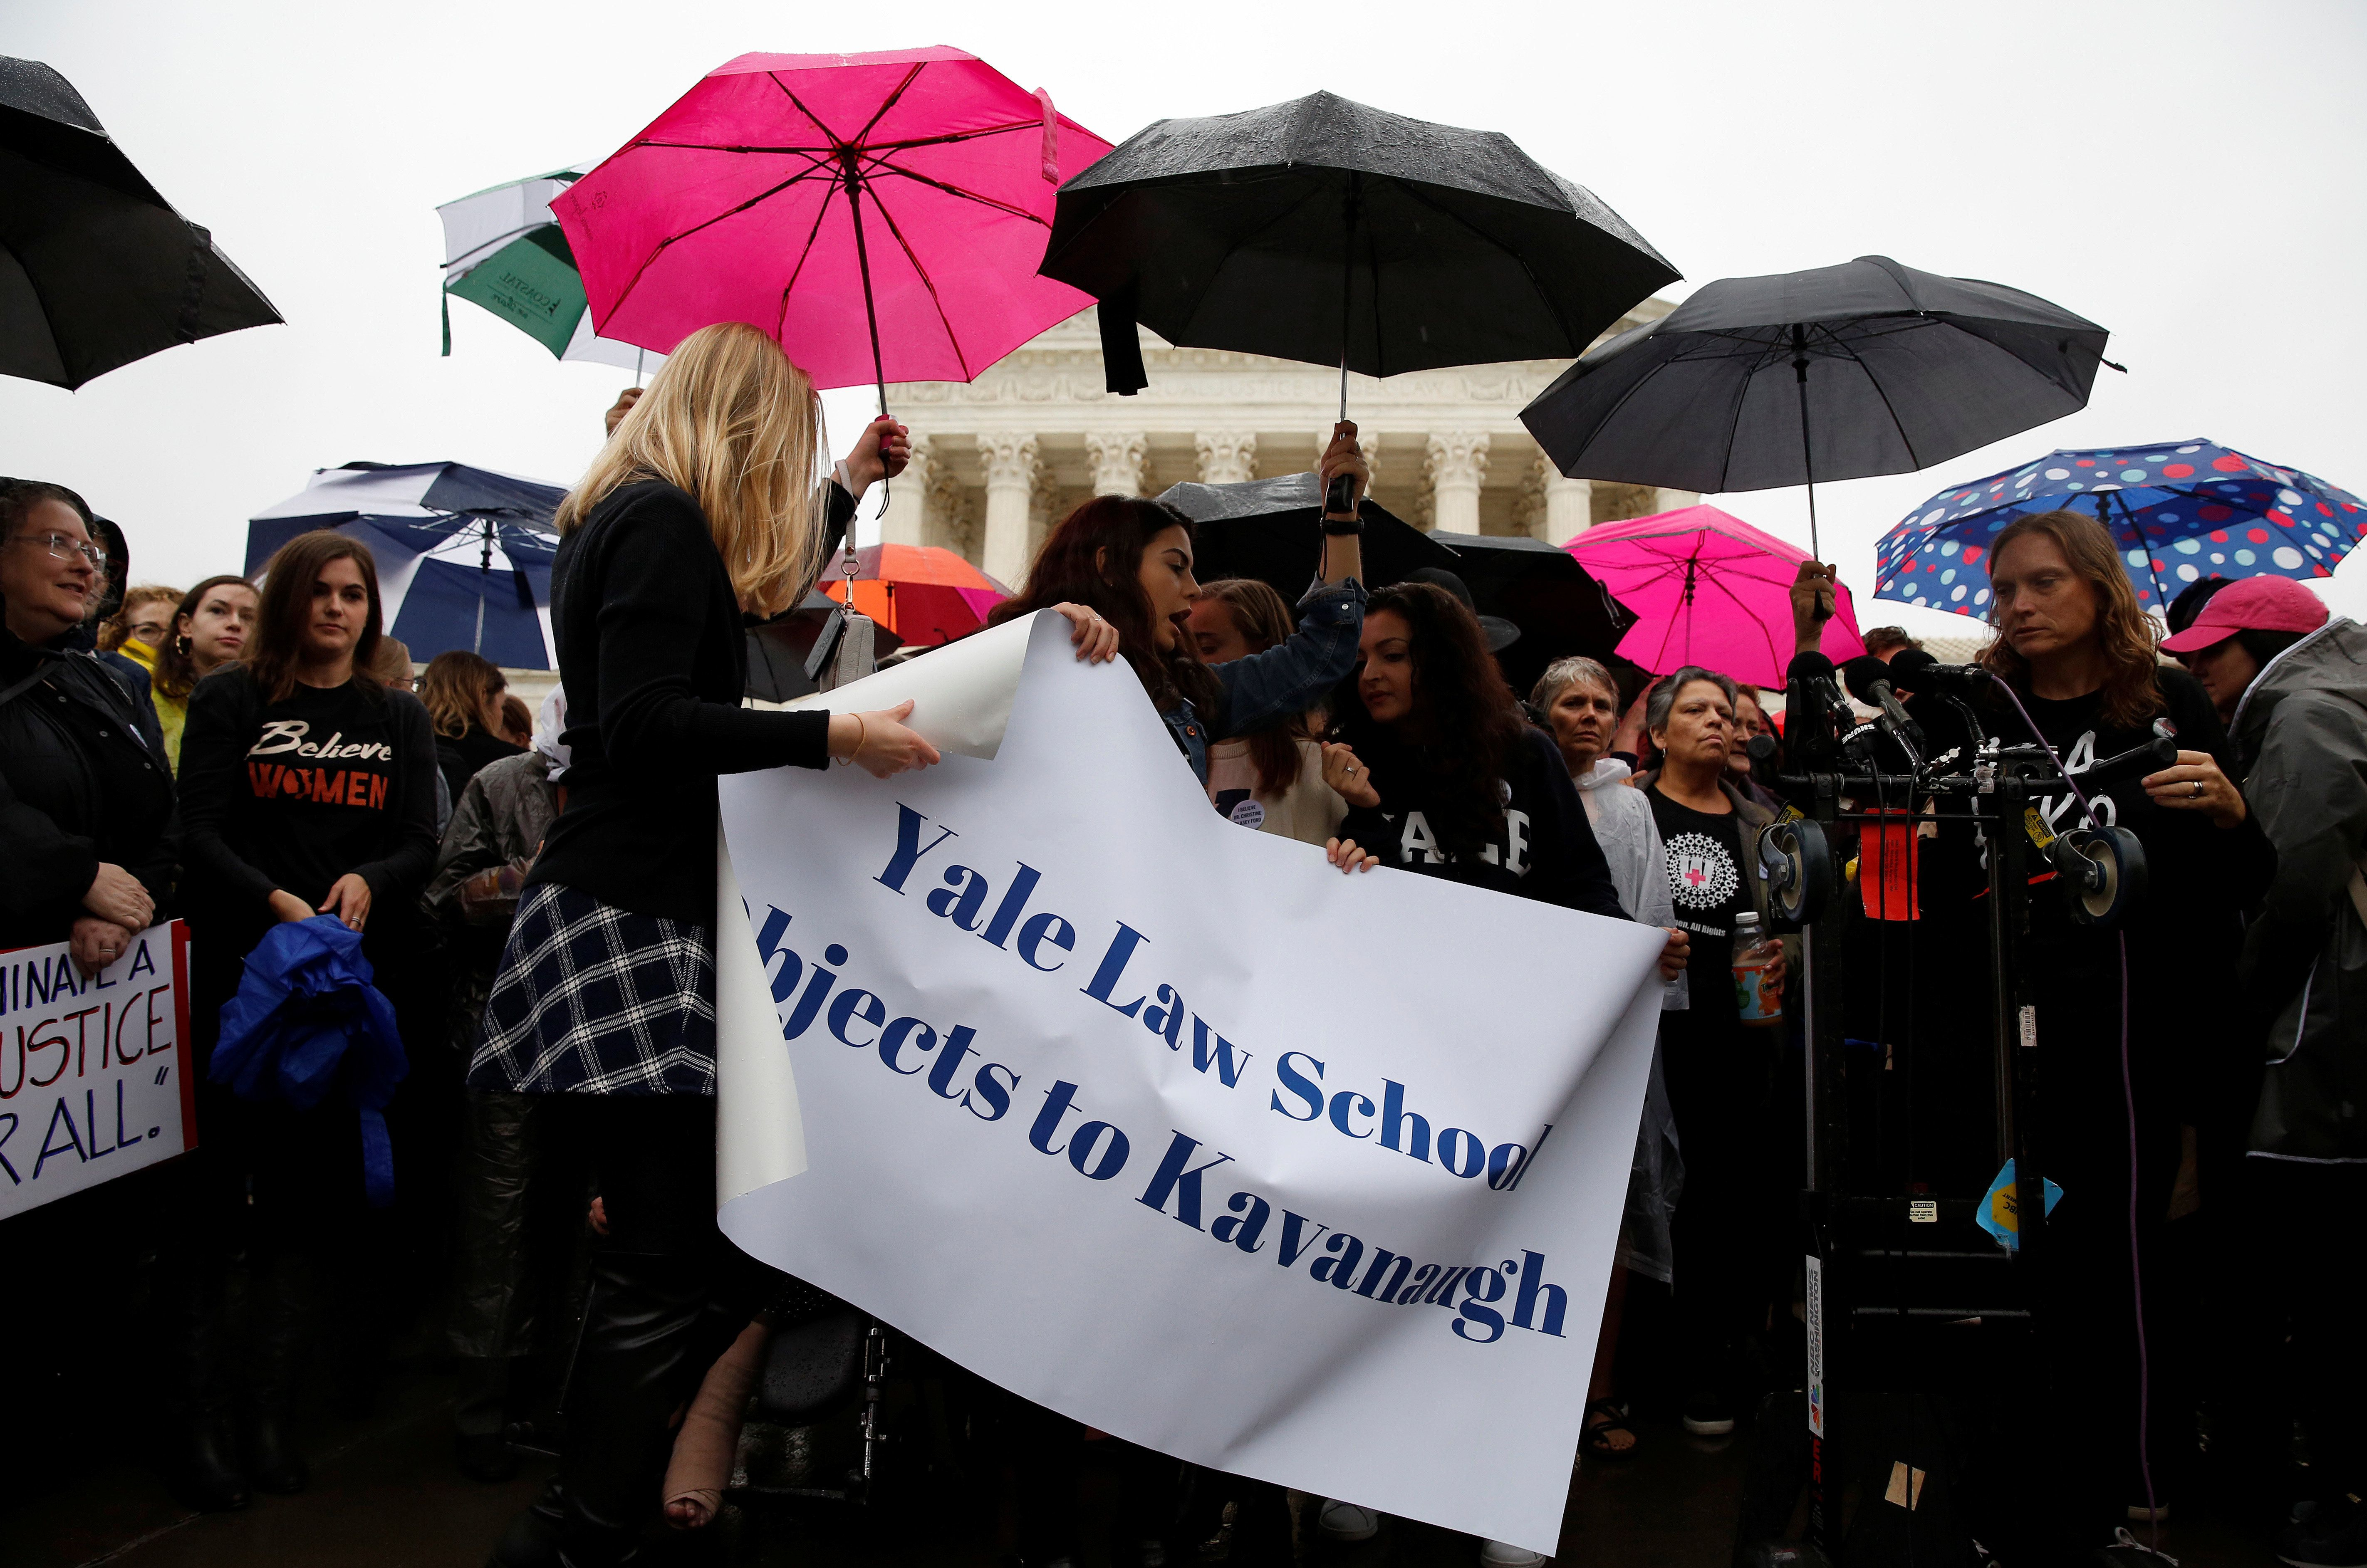 Hundreds Of Yale Students Protest Kavanaugh Demand Investigation Yep Student Protest Political Opinion Women